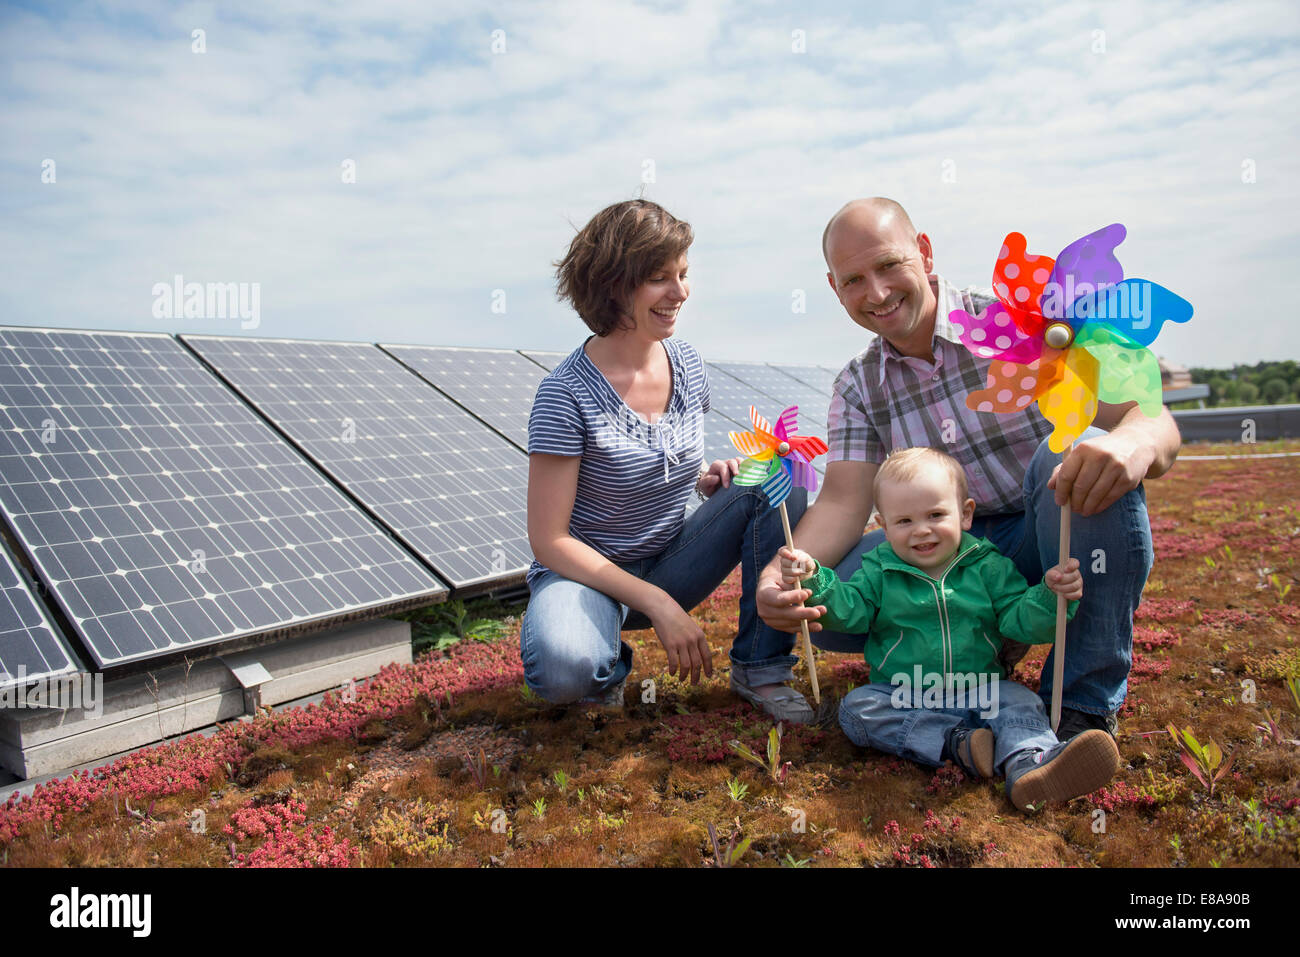 Young family wind solar power environmental issues - Stock Image